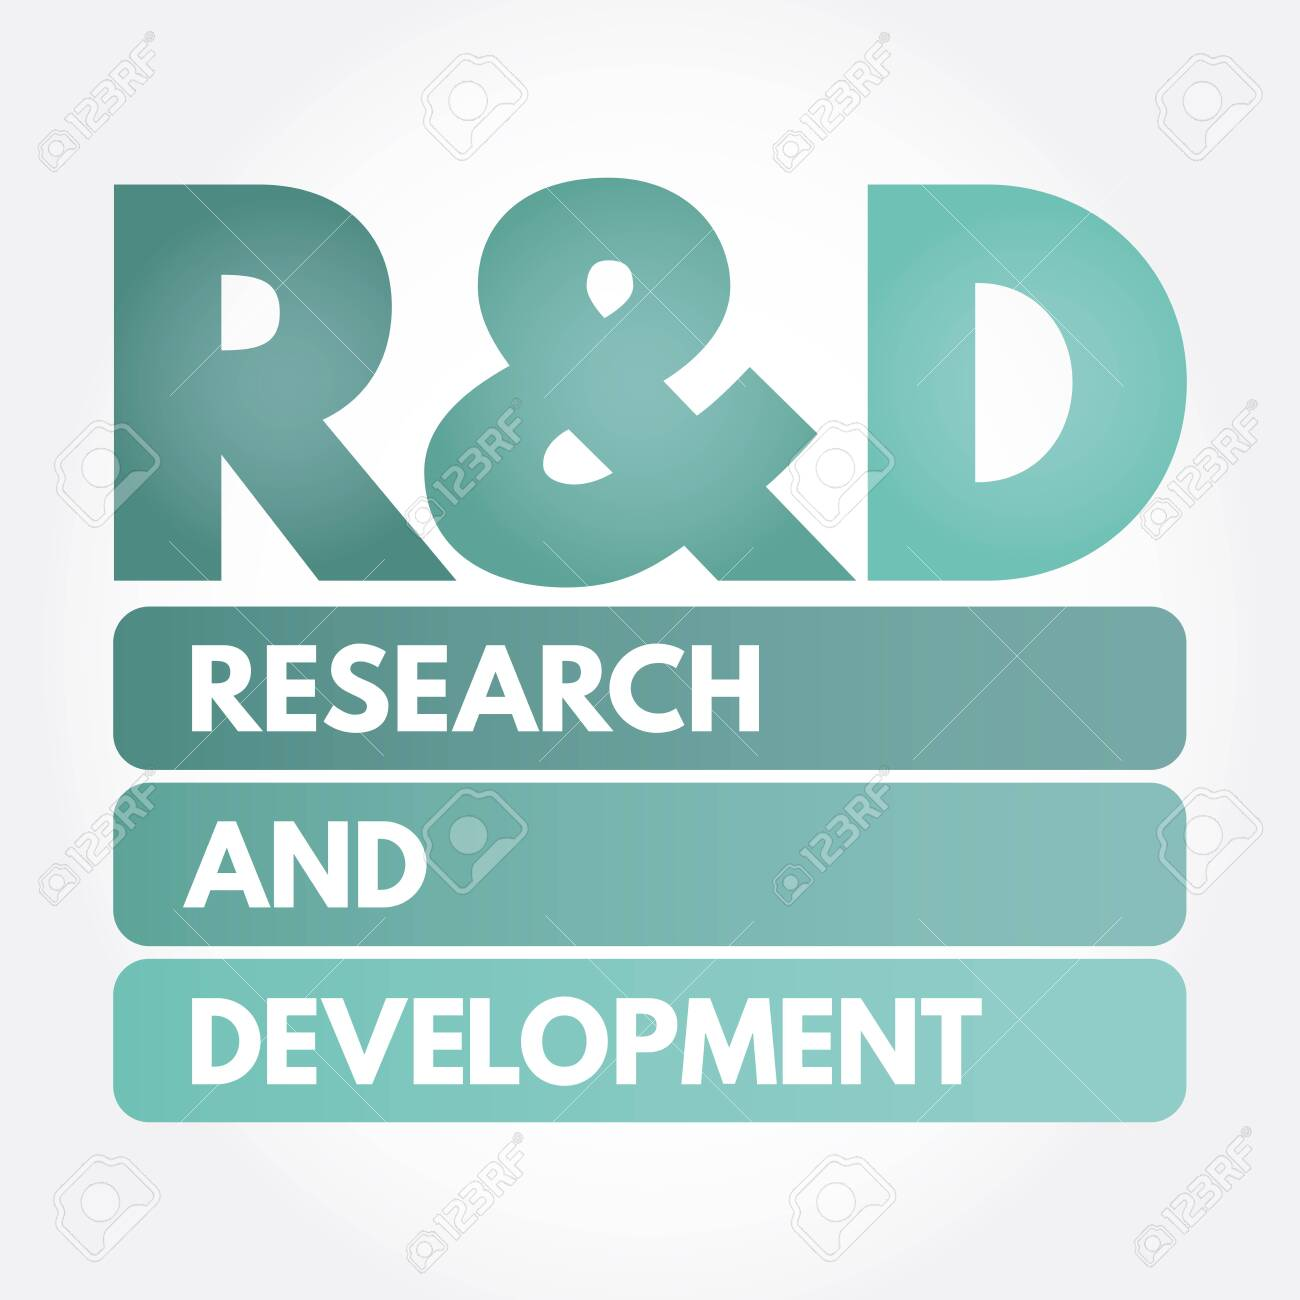 R&D - Research And Development Acronym, Business Concept ...